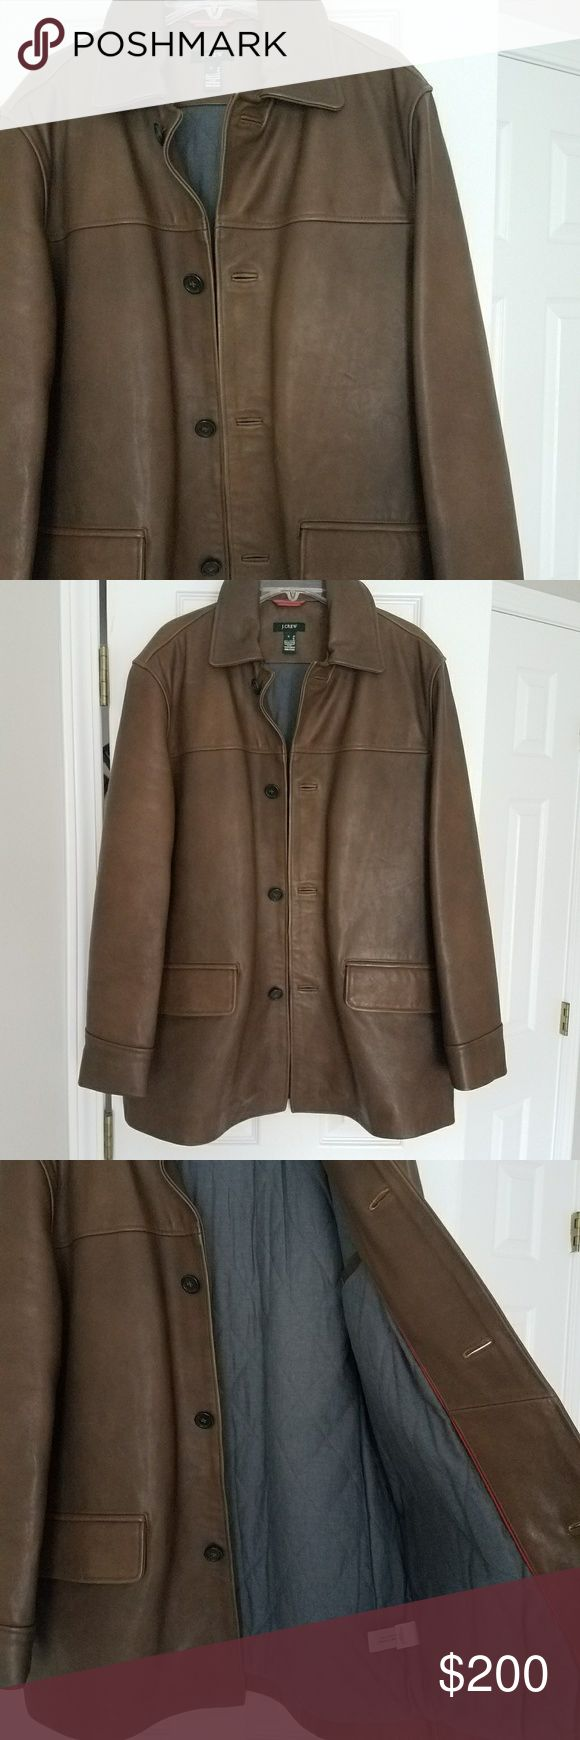 J crew men's leather coat Gently used but still in wonderful condition only worn handful of times. Real leather. No rips, stains, or wears. Inside is quilted fabric.   Great For a holiday gift or to get you through the holidays. J. Crew Jackets & Coats Pea Coats